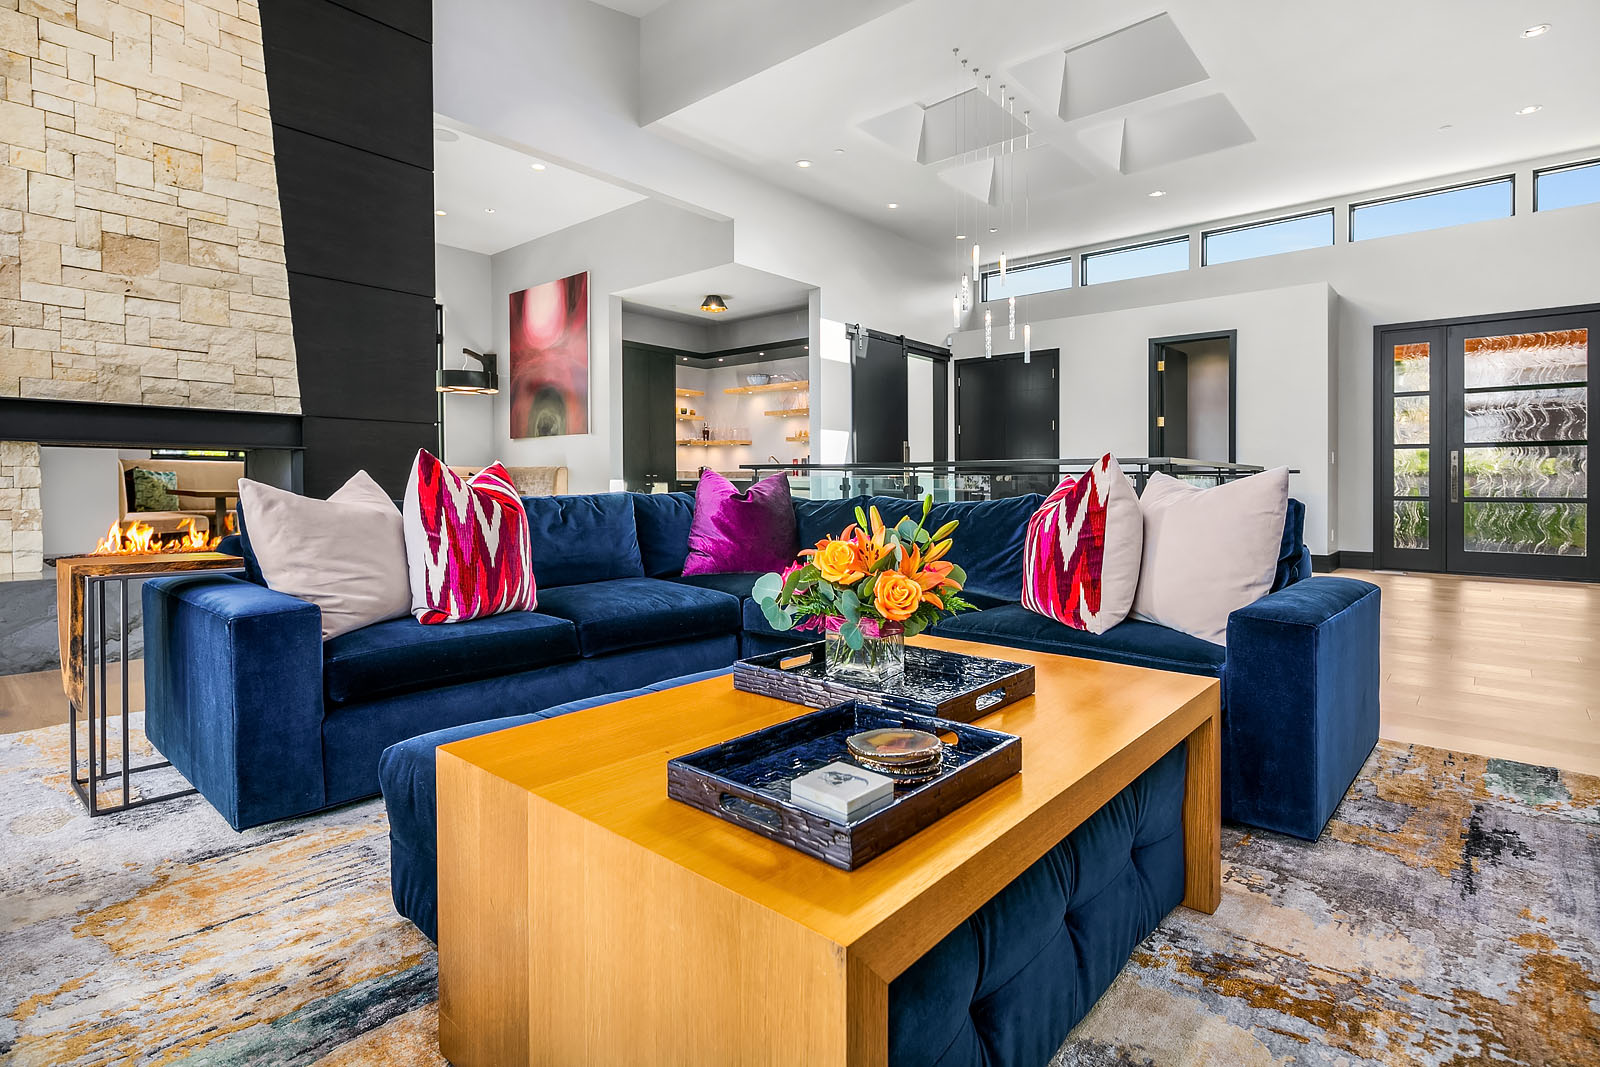 Bellevue, Washington close up of living room with blue couch and colorful pillows with wooden accent table